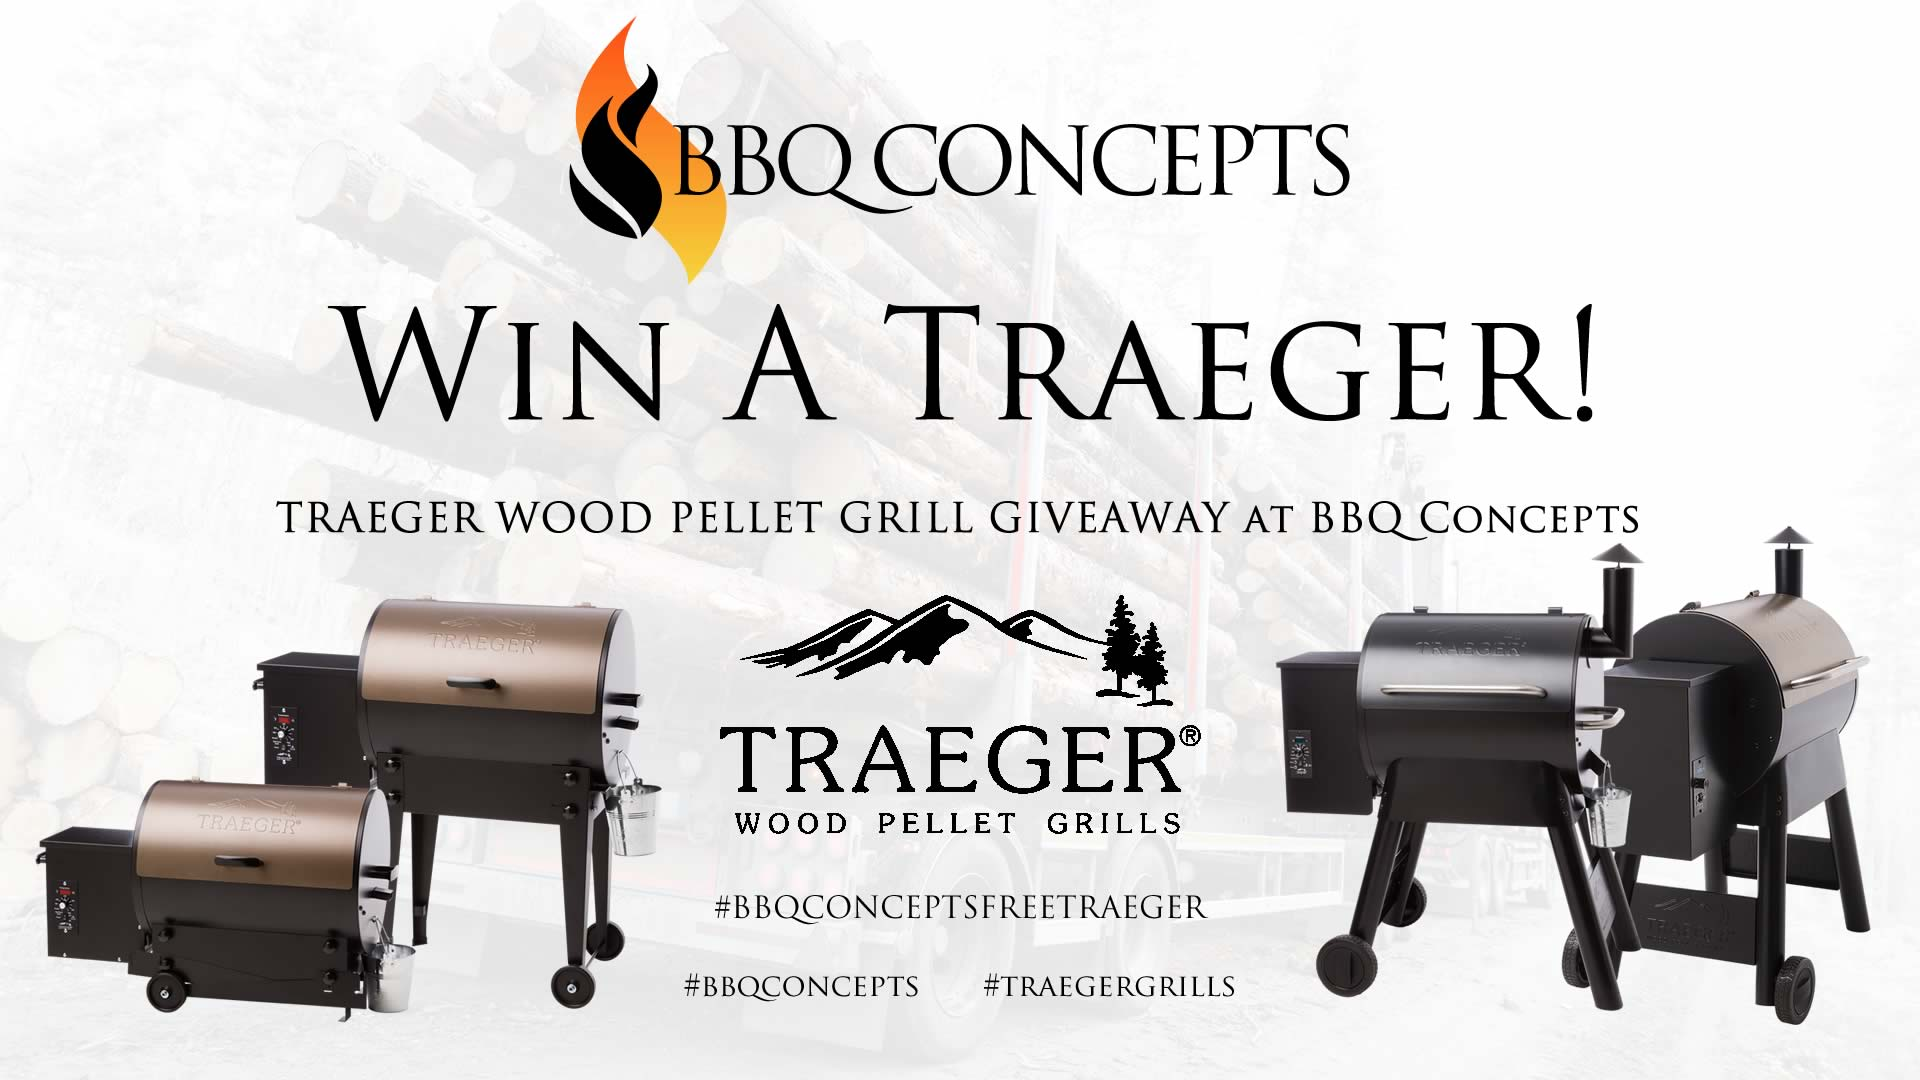 Traeger Day Giveaway Promotion Ad 1 - BBQ Concepts of Las Vegas, Nevada #BBQCONCEPTSFREETRAEGER